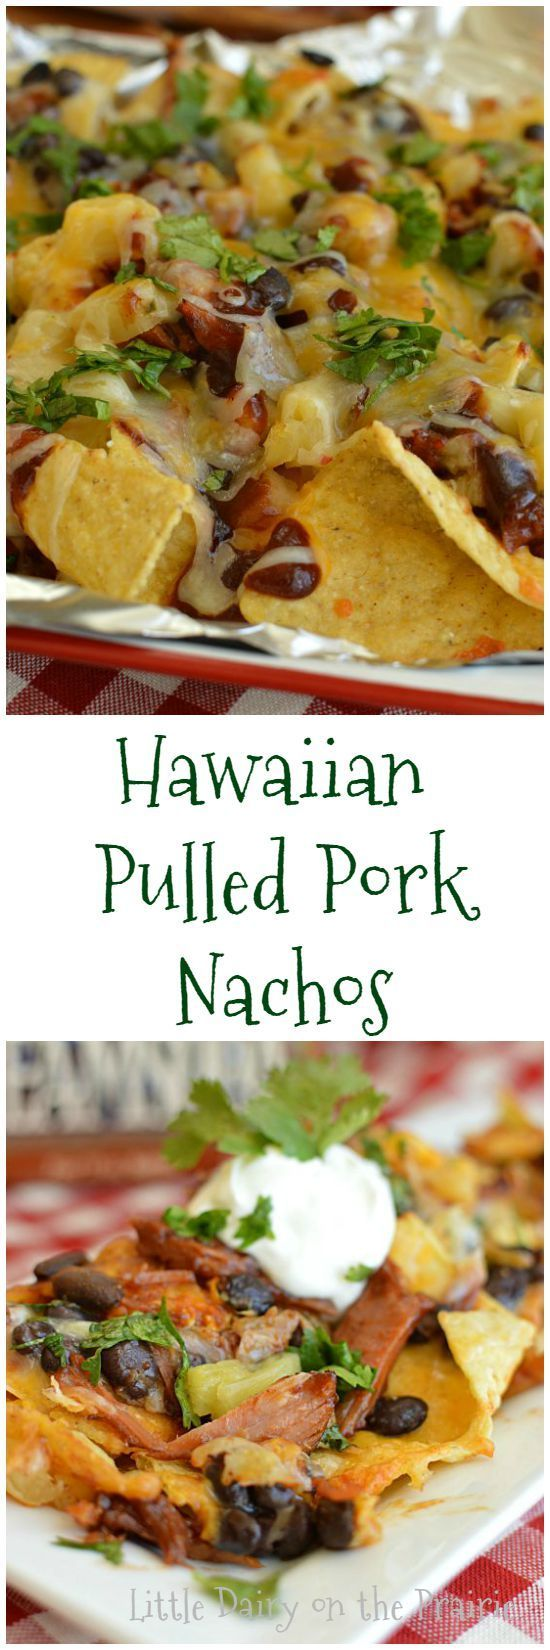 111 best hawaiian food recipes images on pinterest kitchens hawaiian pulled pork nachos quick and easy meal hawaiian food recipesparty forumfinder Image collections